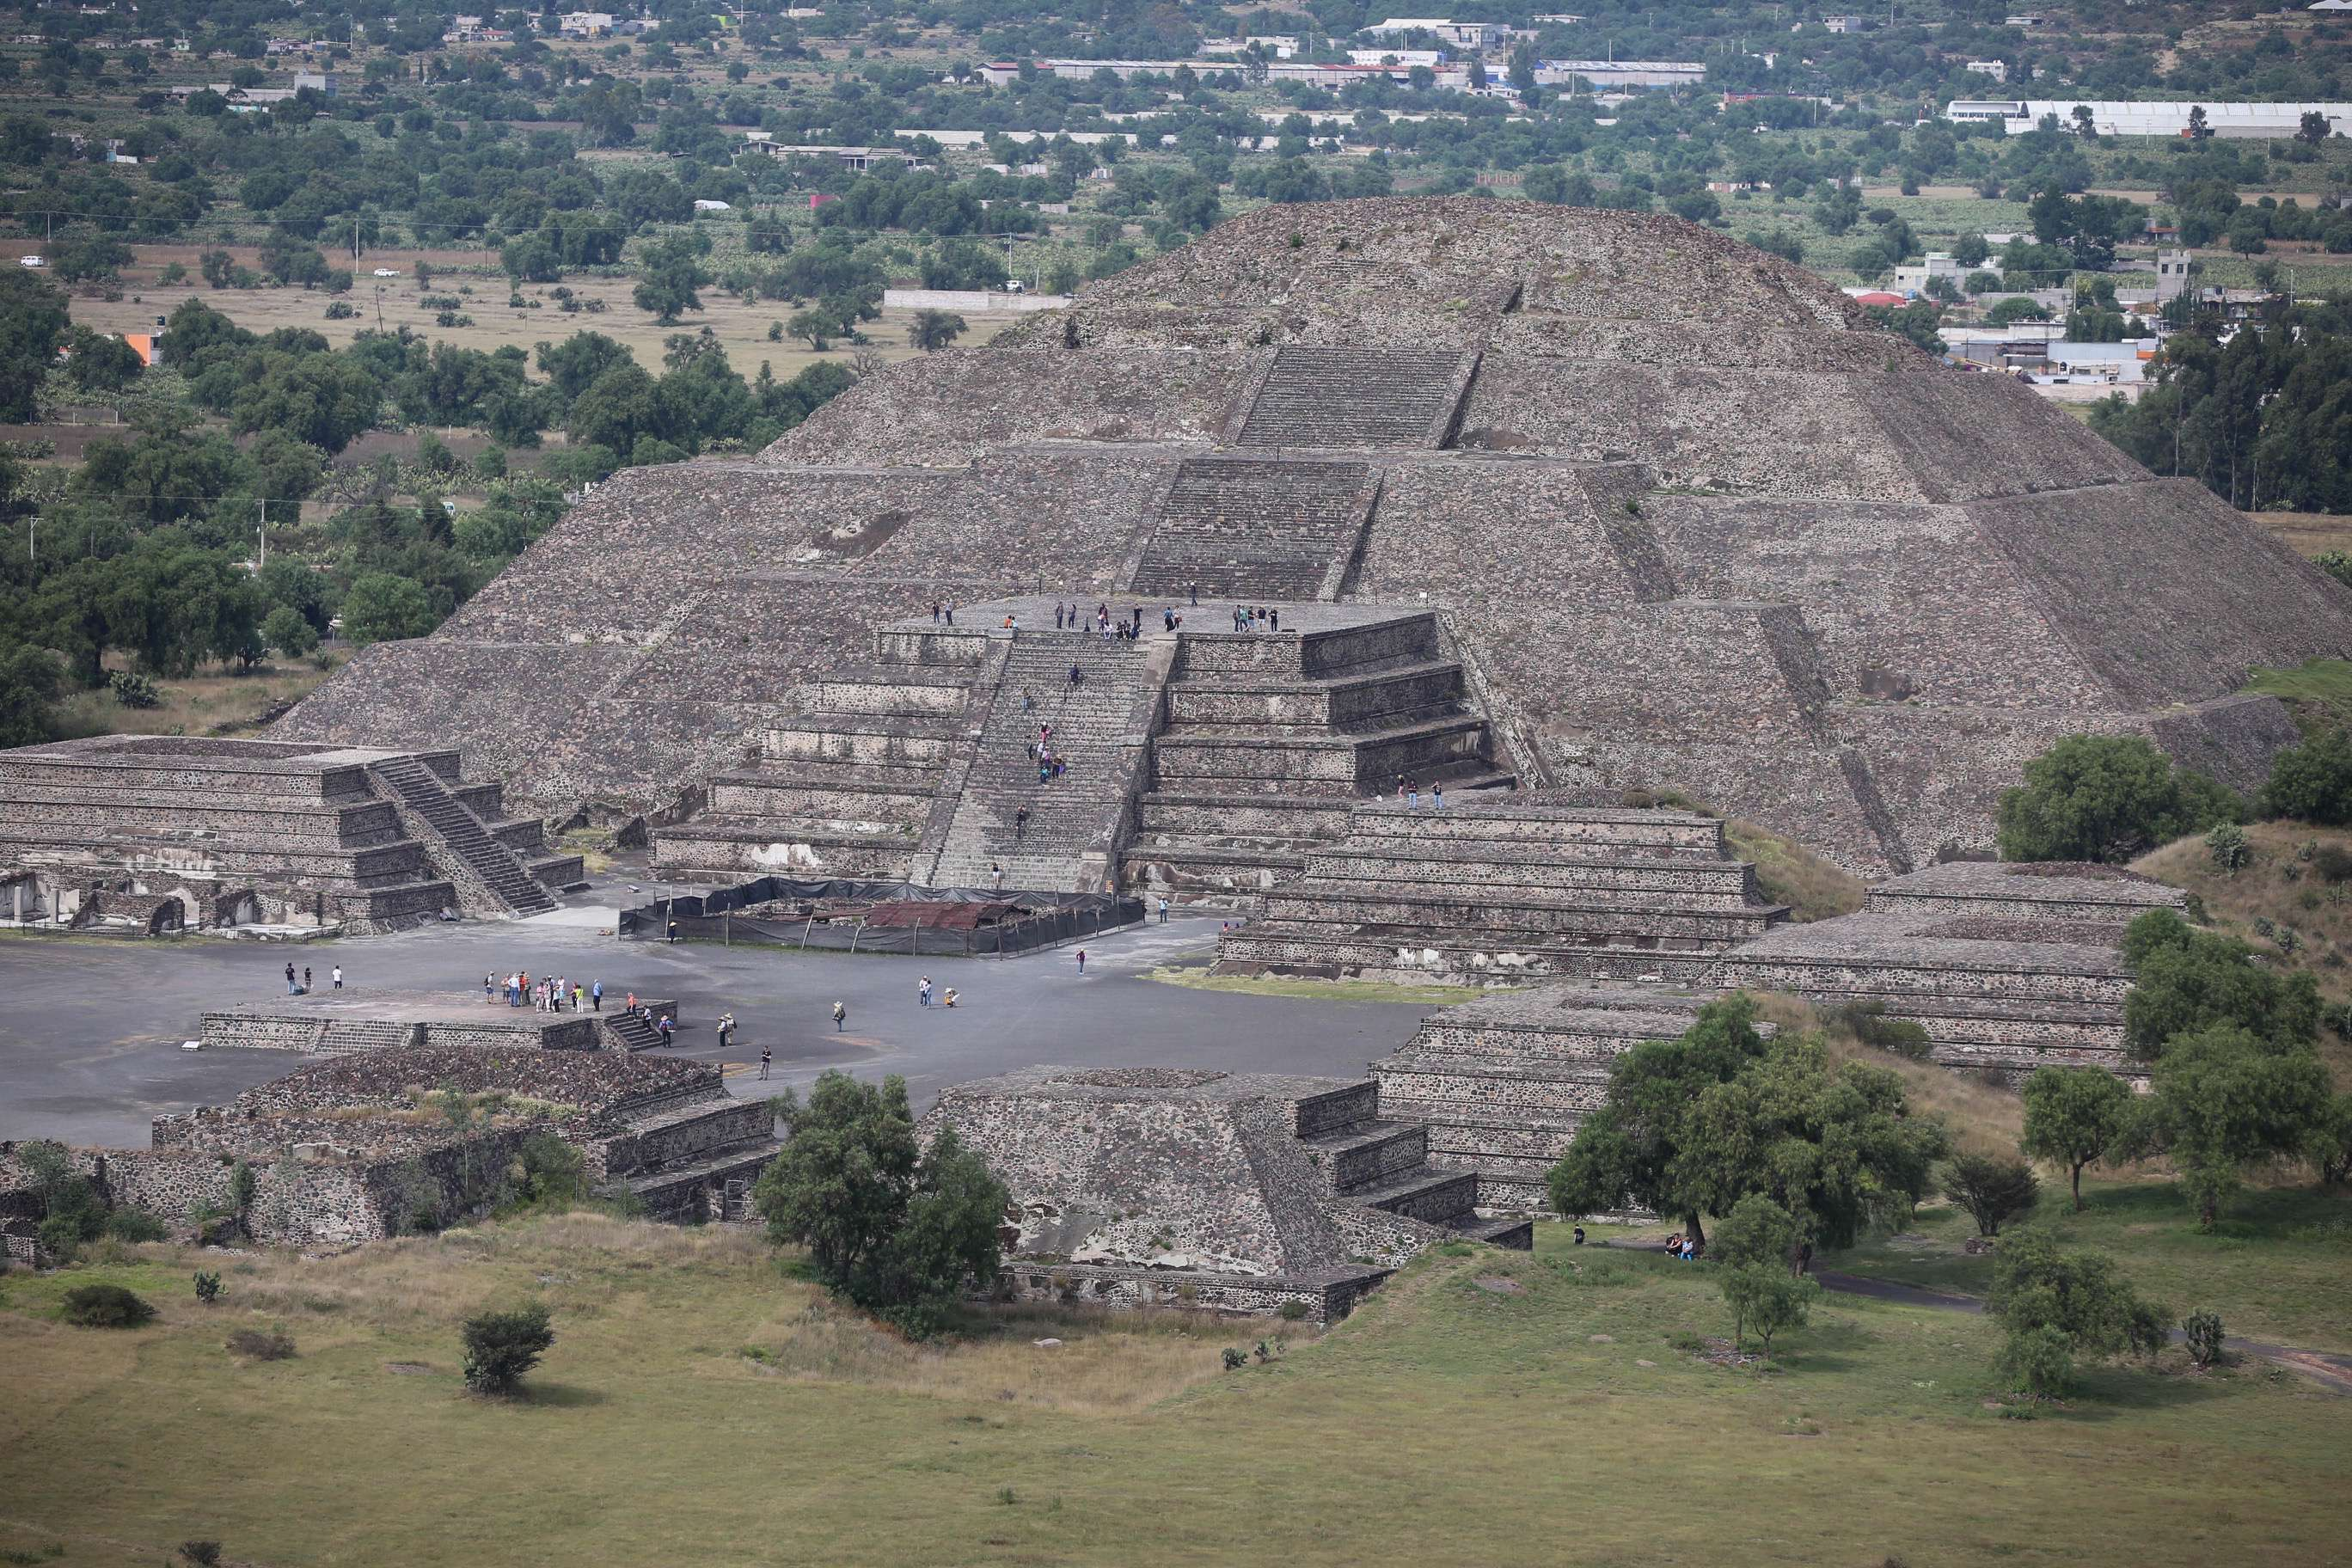 Though it is considerably smaller than the Pyramid of the Sun, the Pyramid of the moon still looms large and is an inviting climb for the millions of tourists who visit the site every year.